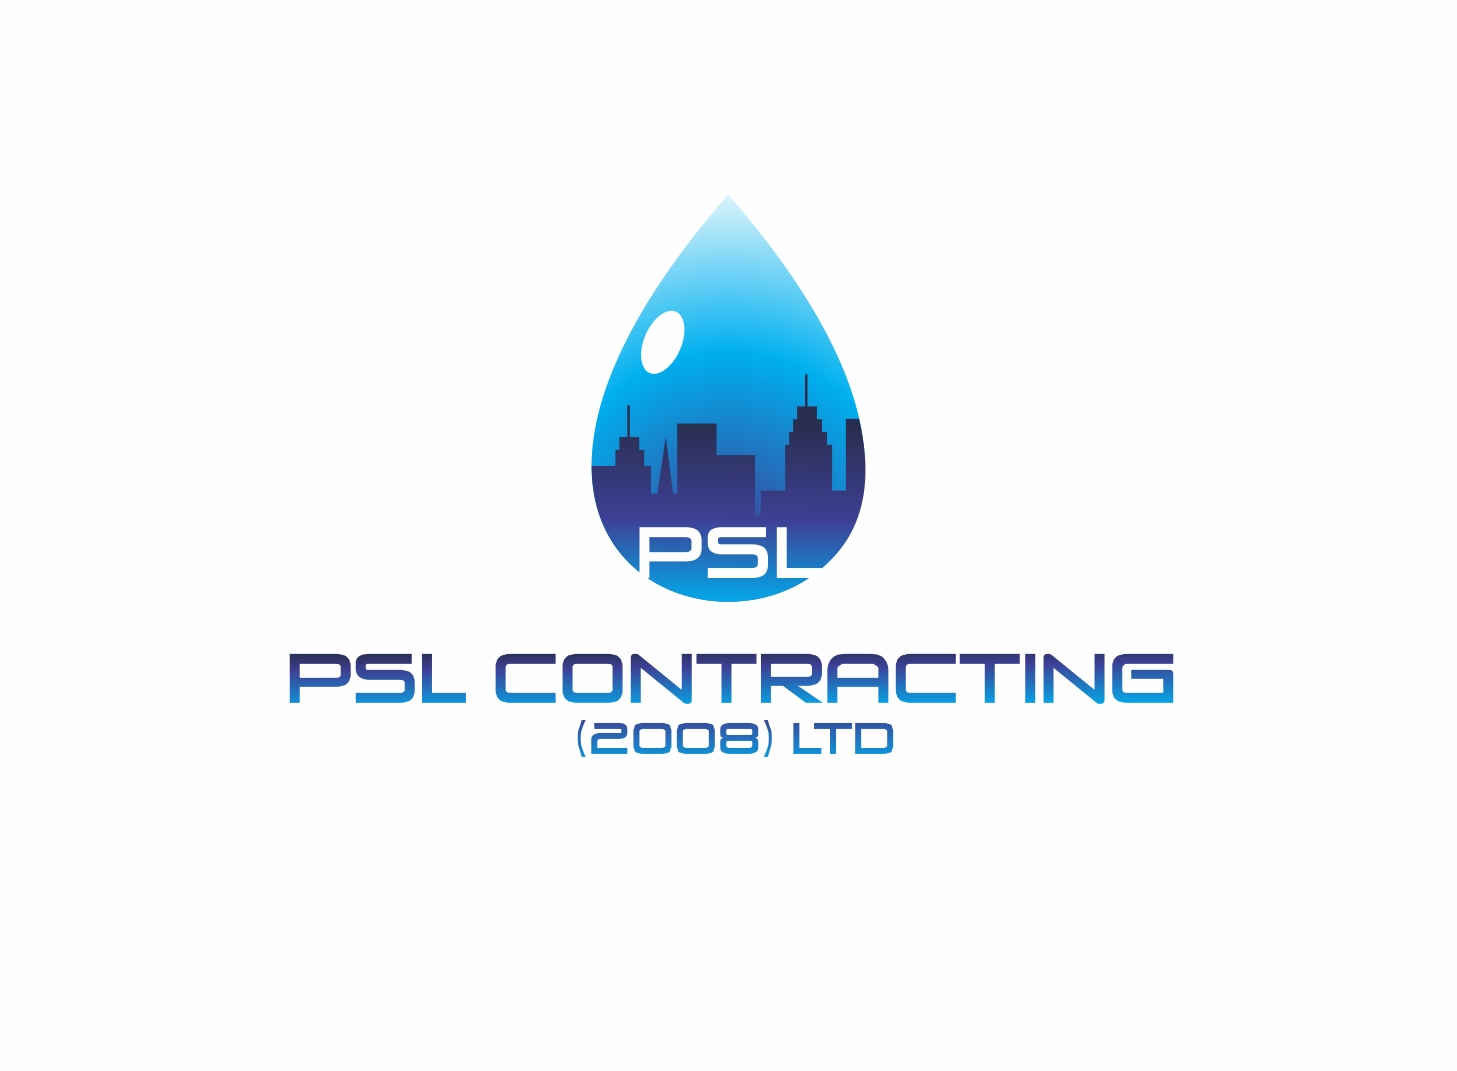 Logo Design by Zdravko Krulj - Entry No. 21 in the Logo Design Contest PSL Contracting (2008) Ltd. Logo Design.